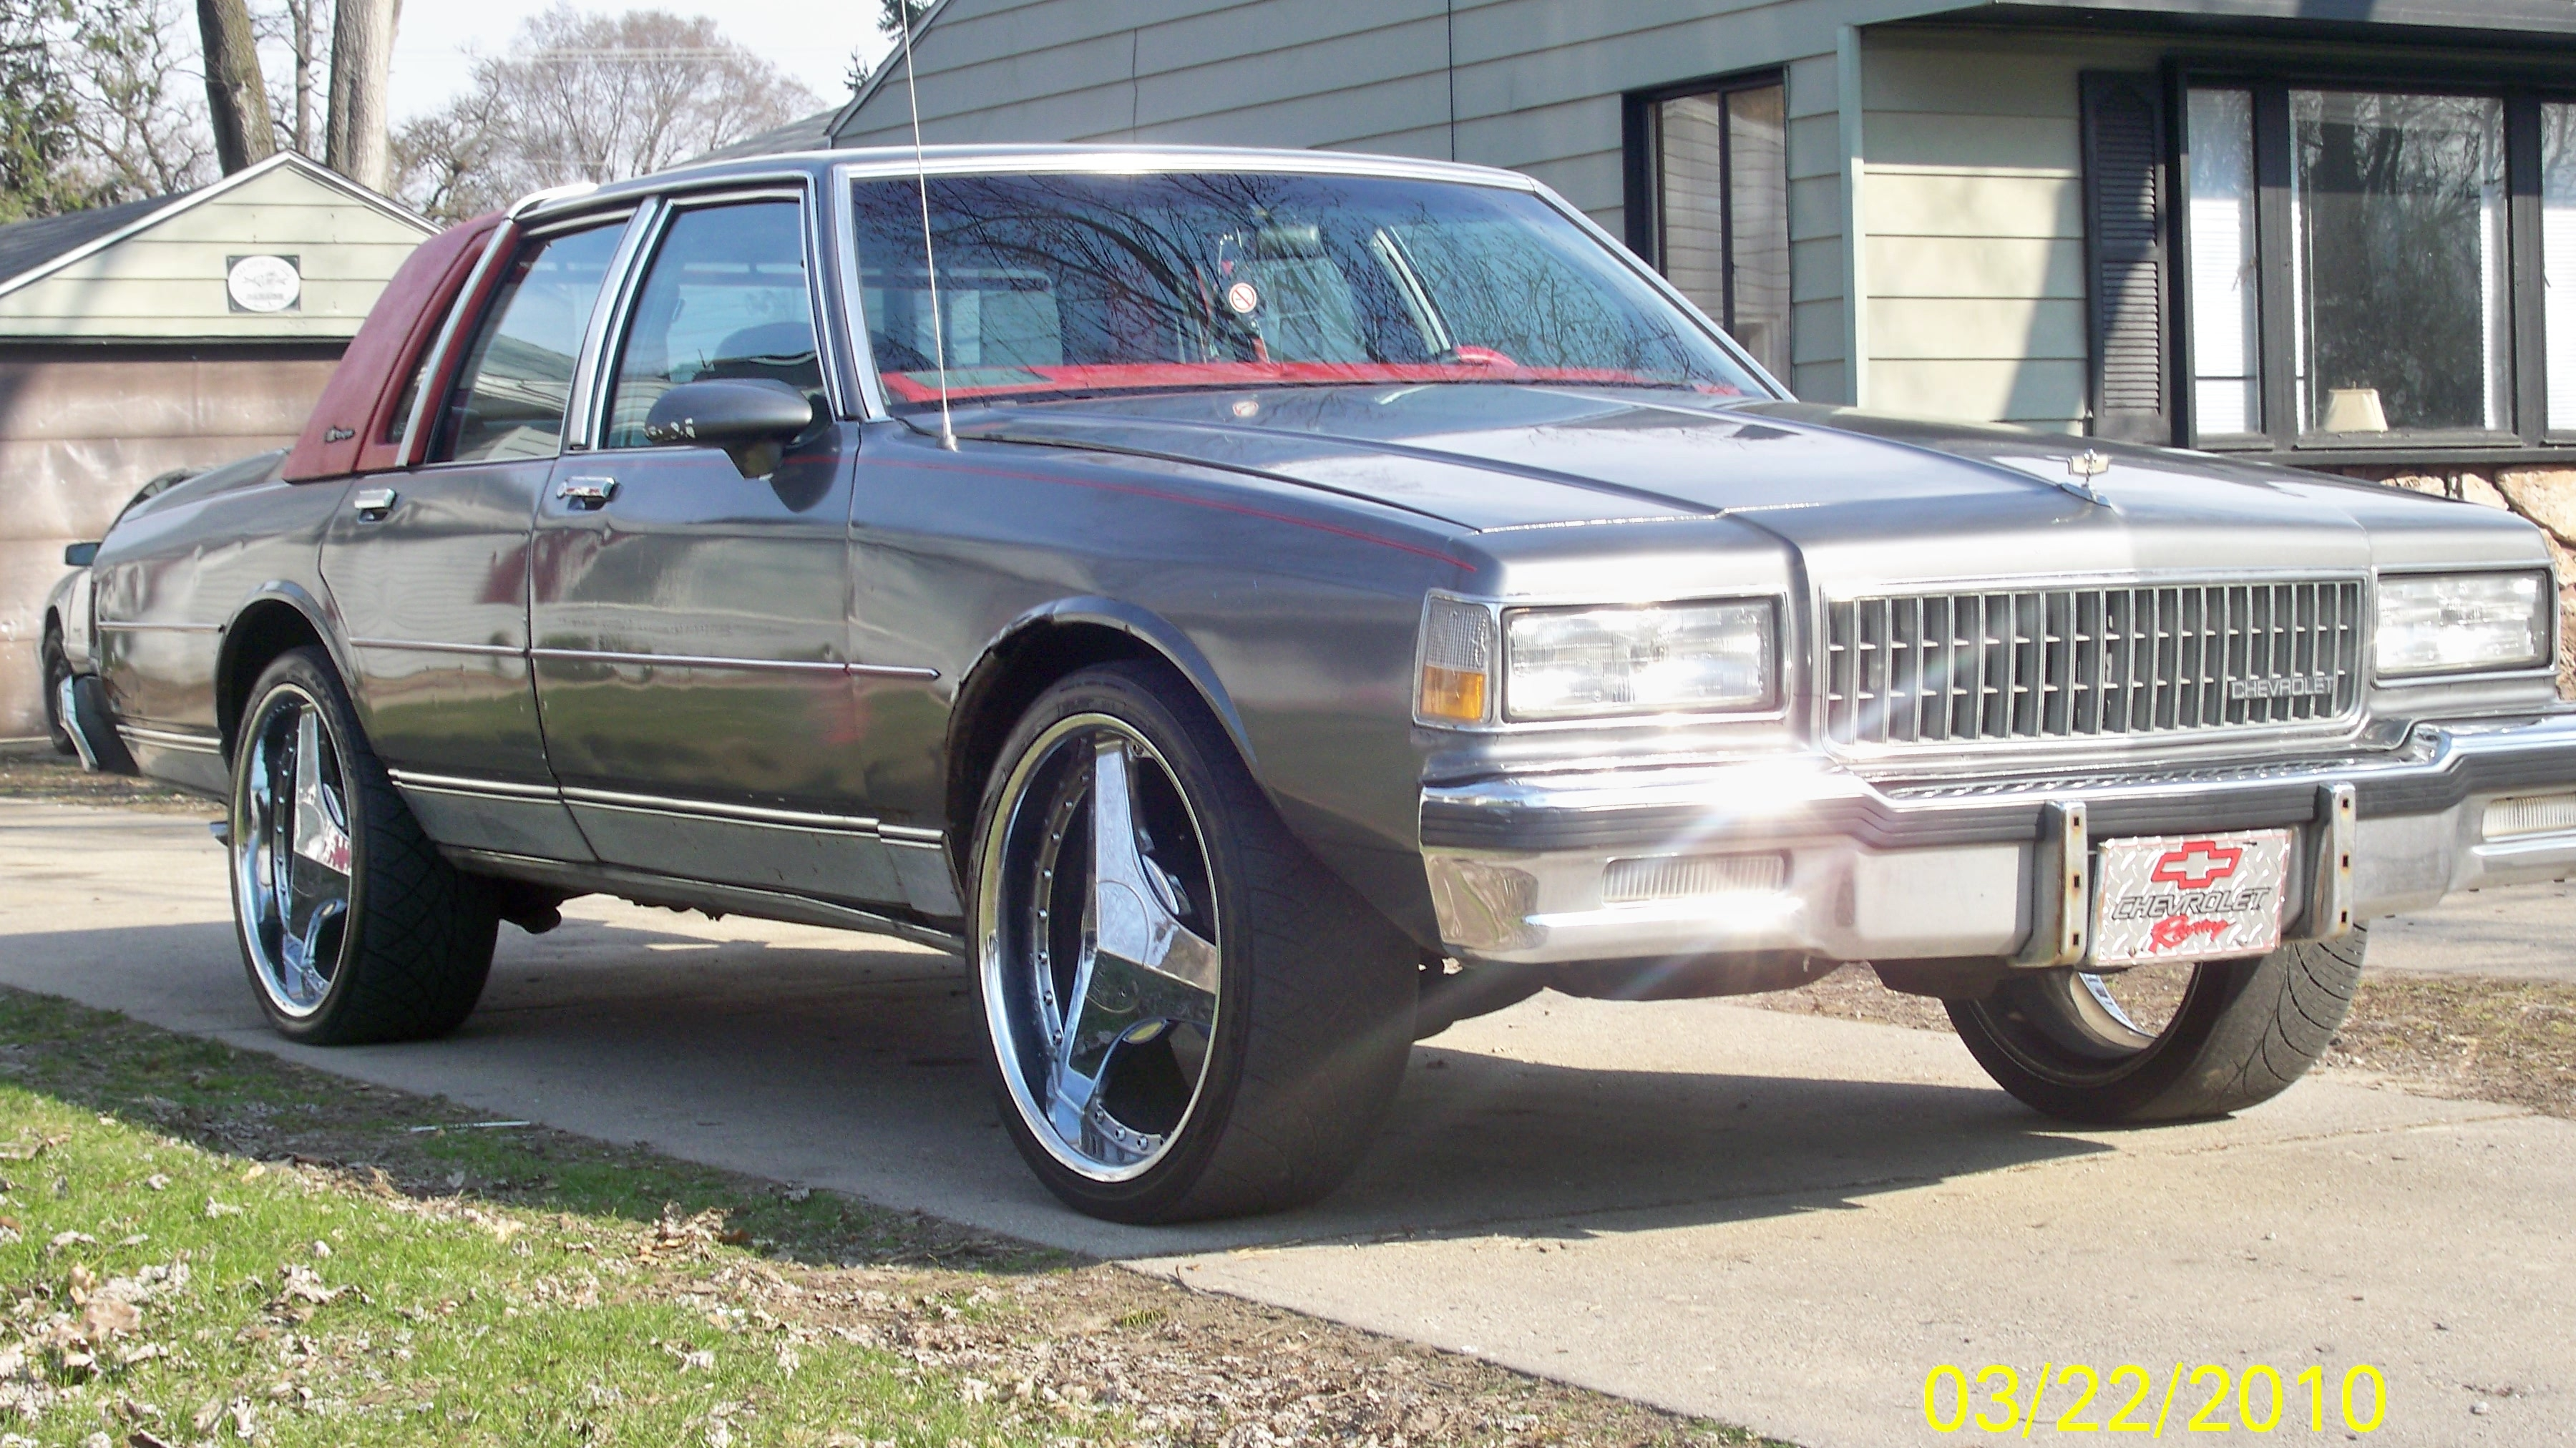 kobe21 1989 Chevrolet Caprice Specs, Photos, Modification Info at